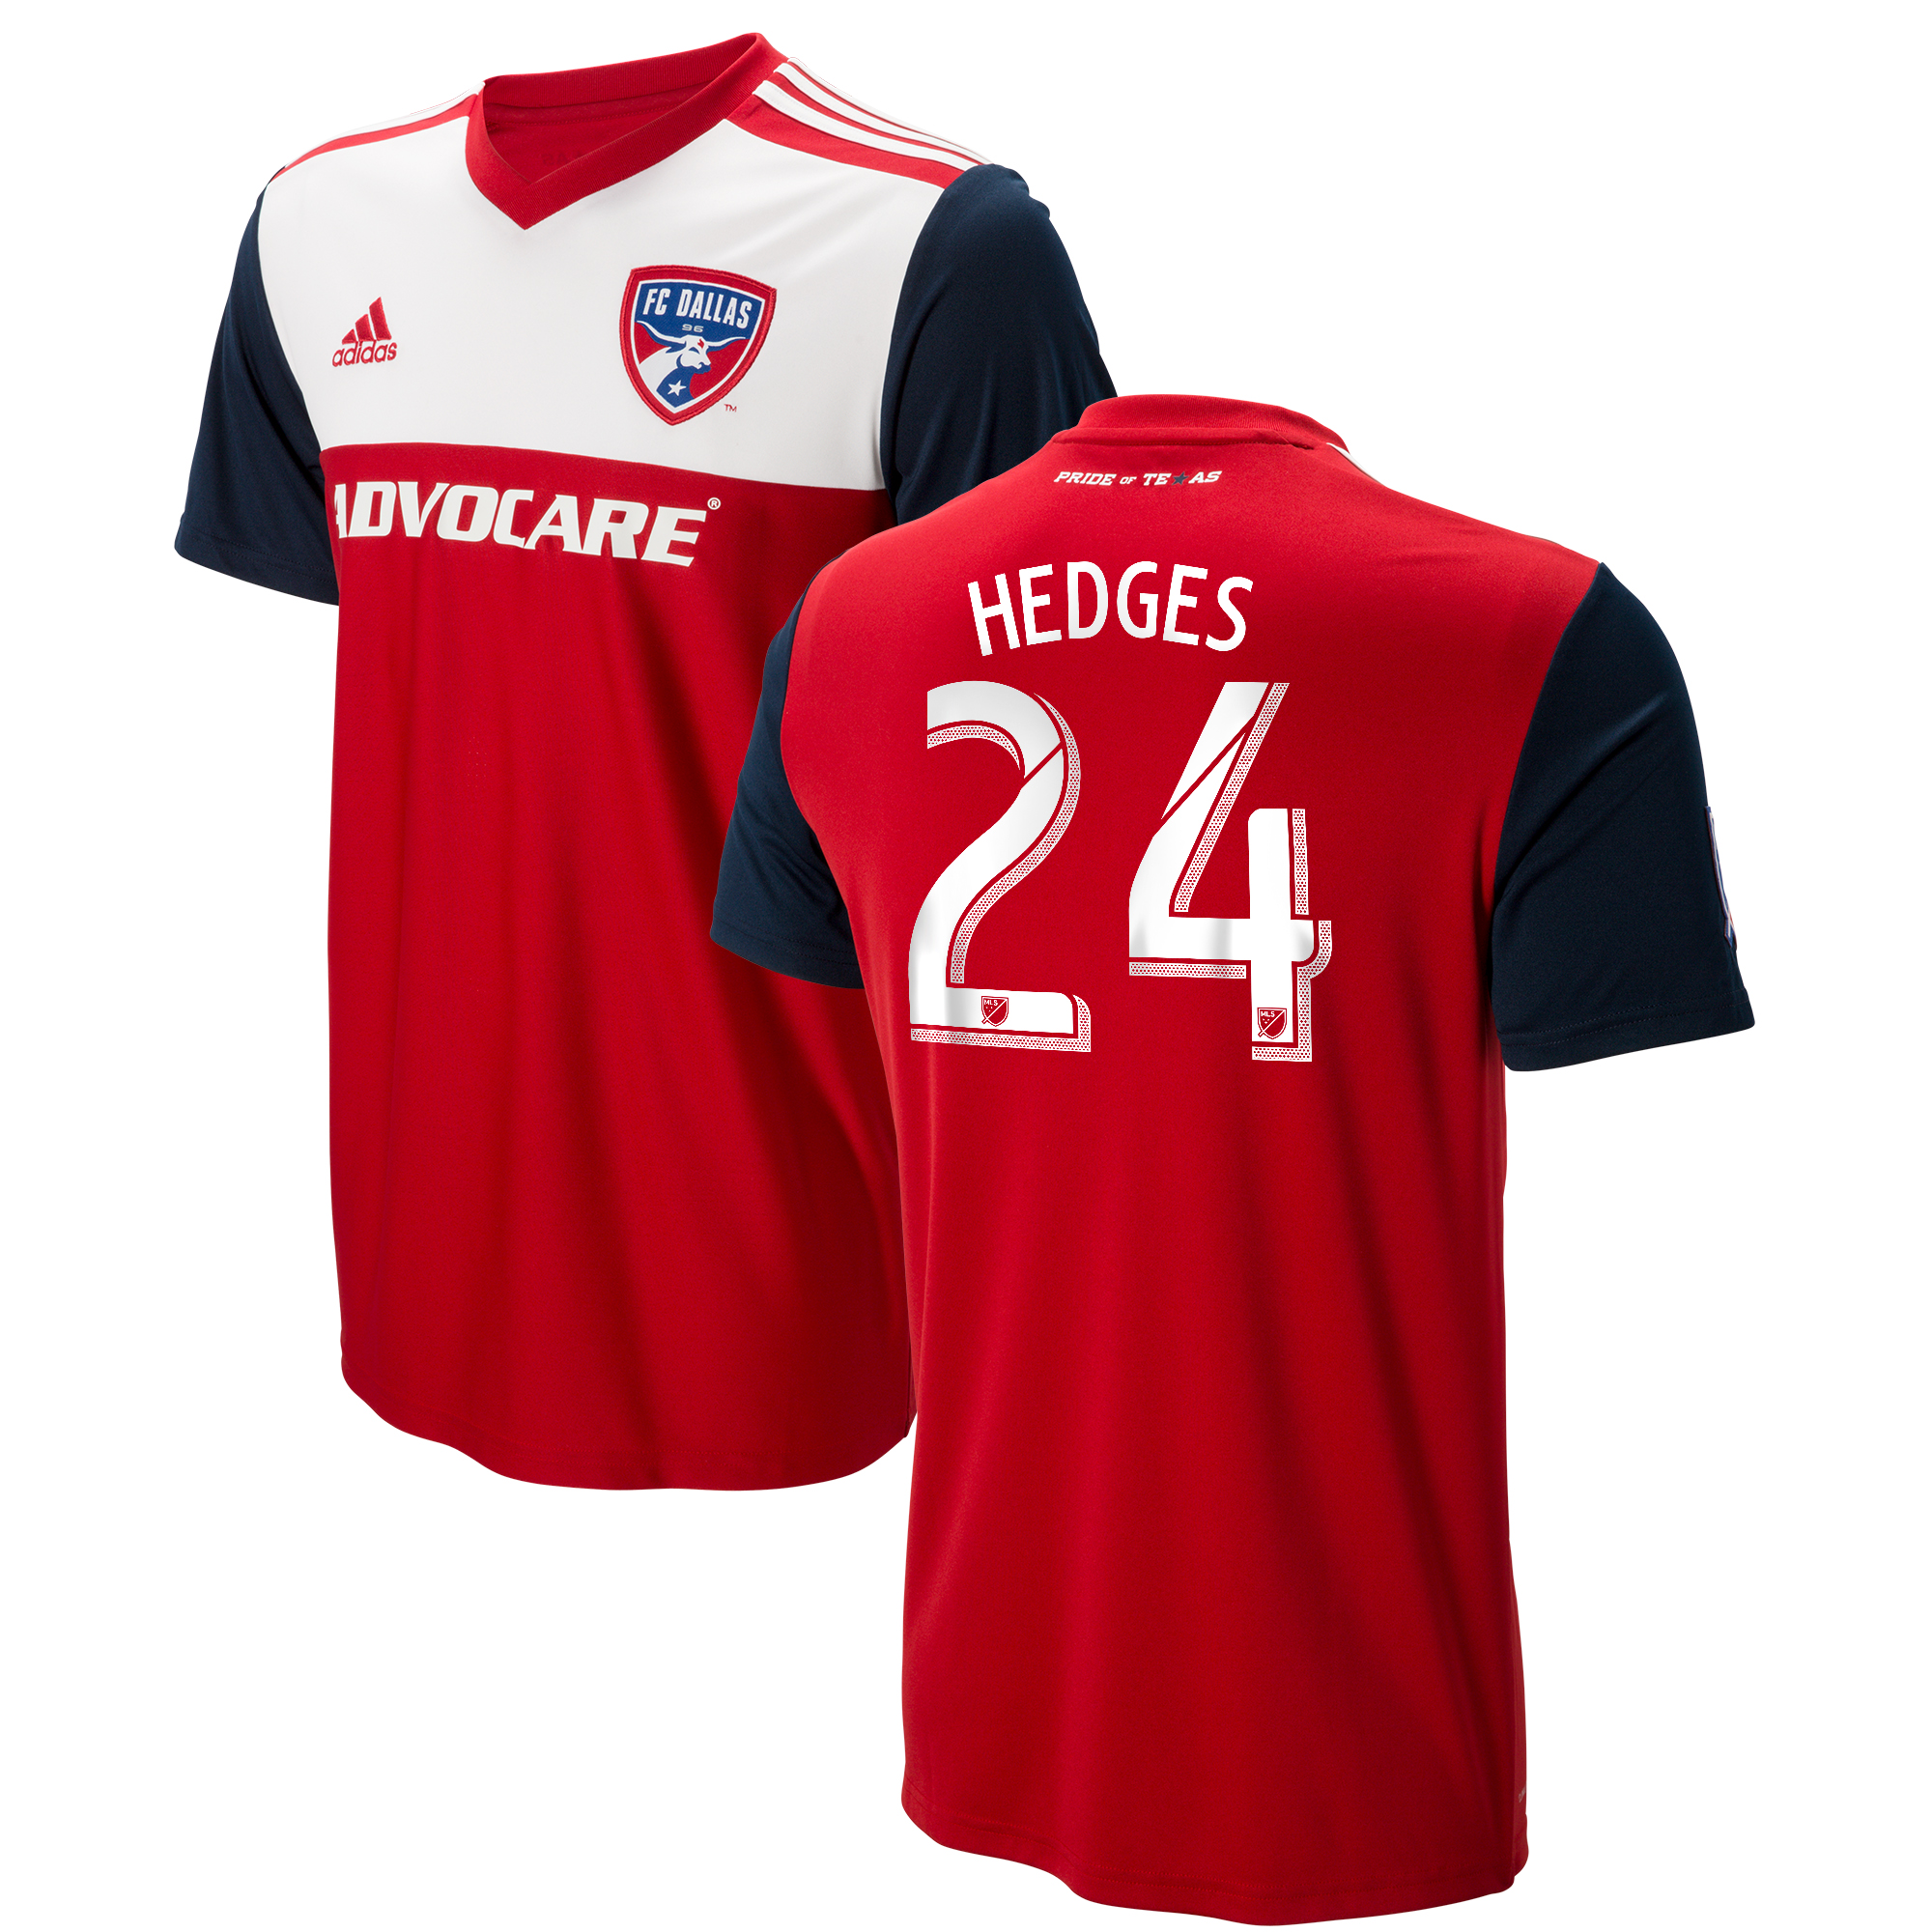 FC Dallas Home Shirt 2018 with Hedges 24 printing